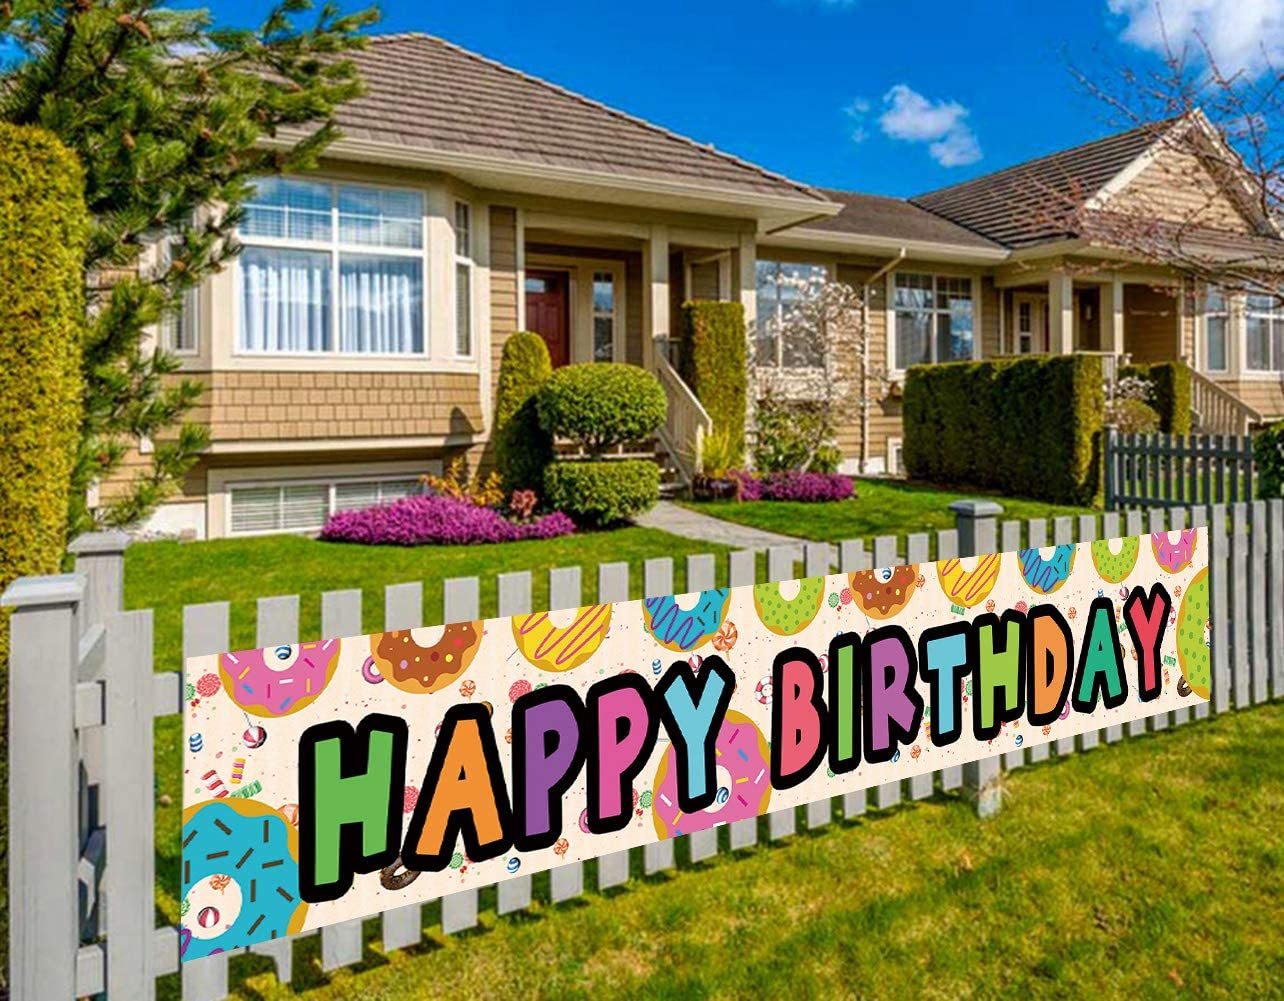 Large Donut Birthday Banner, Donut Theme Birthday Party Decorations Supplies, Donut Grown Up Party, Indoor Outdoor (9.8 x 1.6 feet)